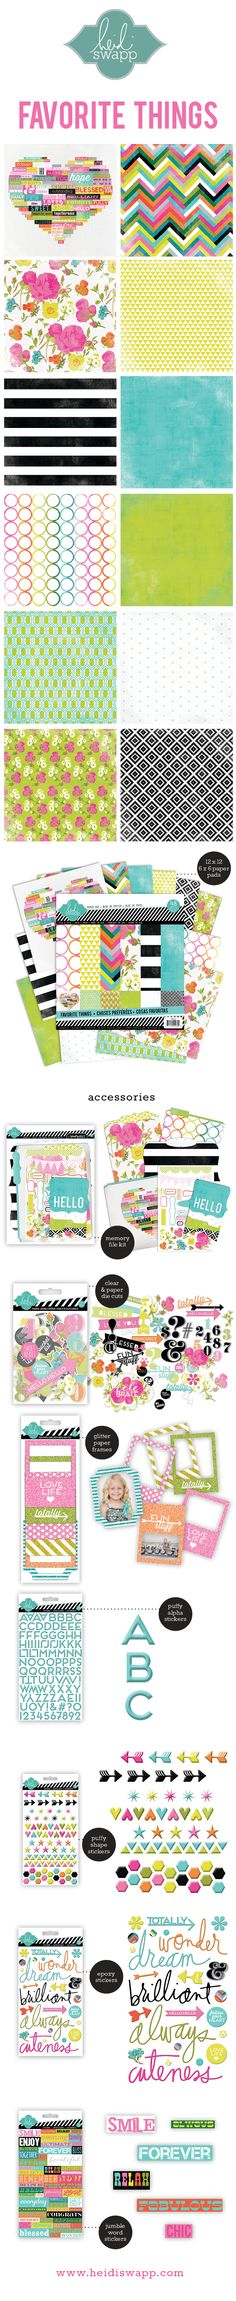 BlogSneakPeeks_FavoriteThings by Heidi Swapp- Beautiful collection. Love the glitter frames in this collection.